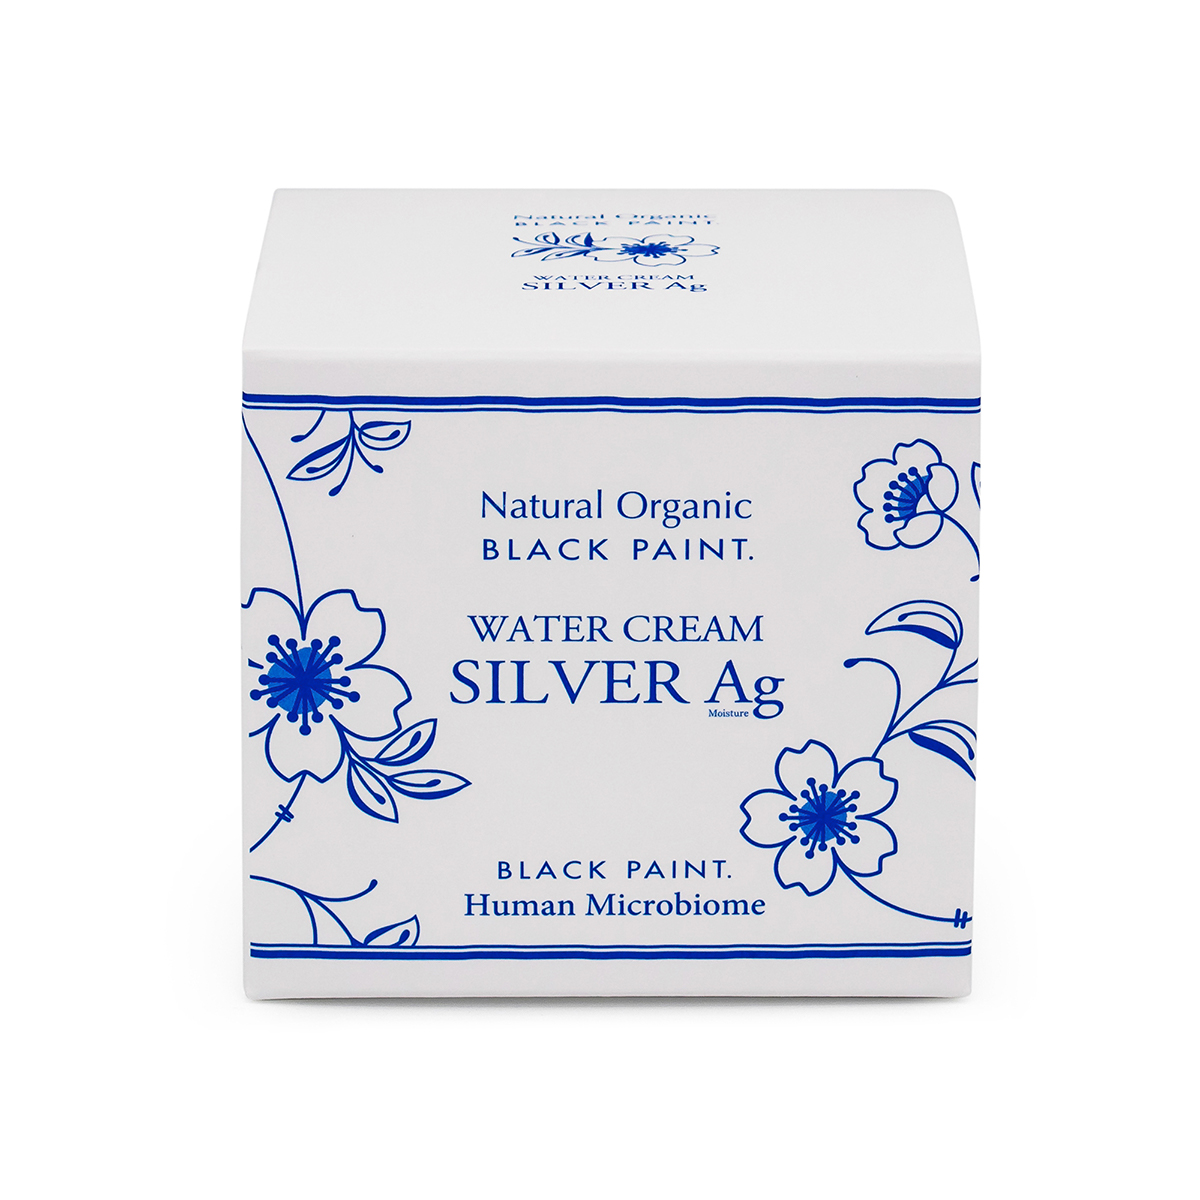 Water Cream Silver 100g with Human Microbiome - box front